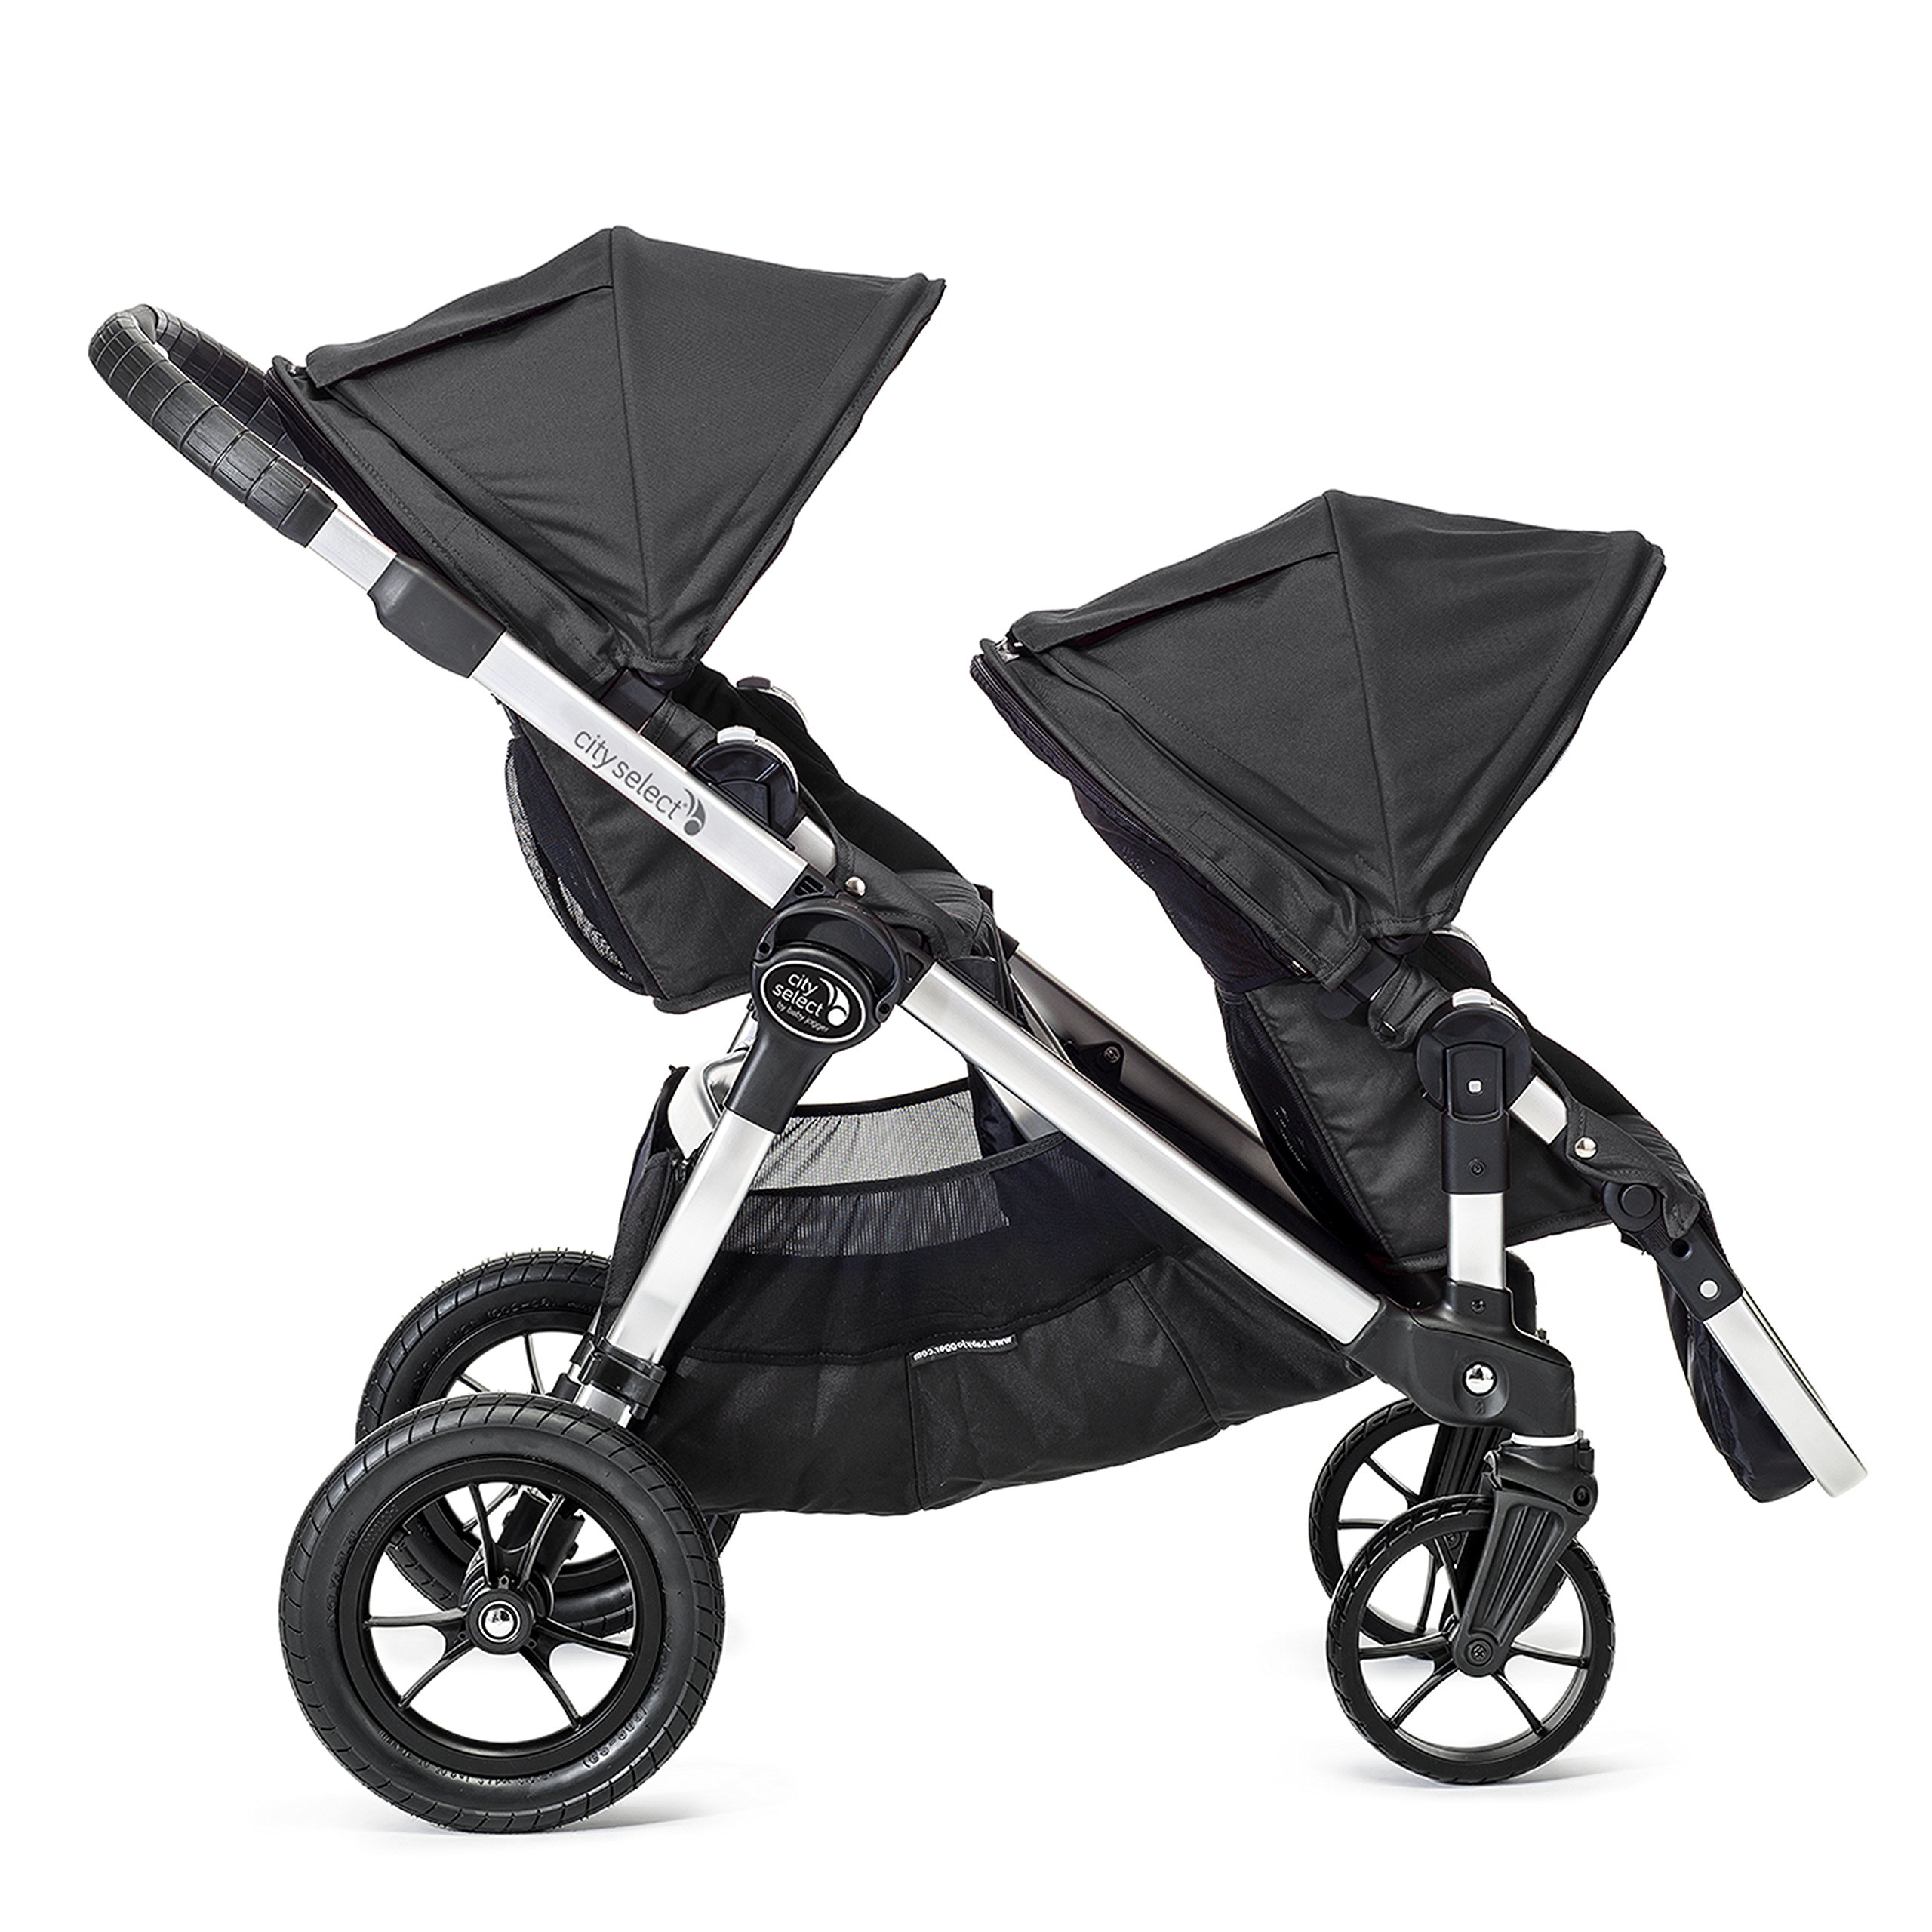 Baby Jogger City Select Second Seat Kit with Silver Frame, Onyx by Baby Jogger (Image #5)